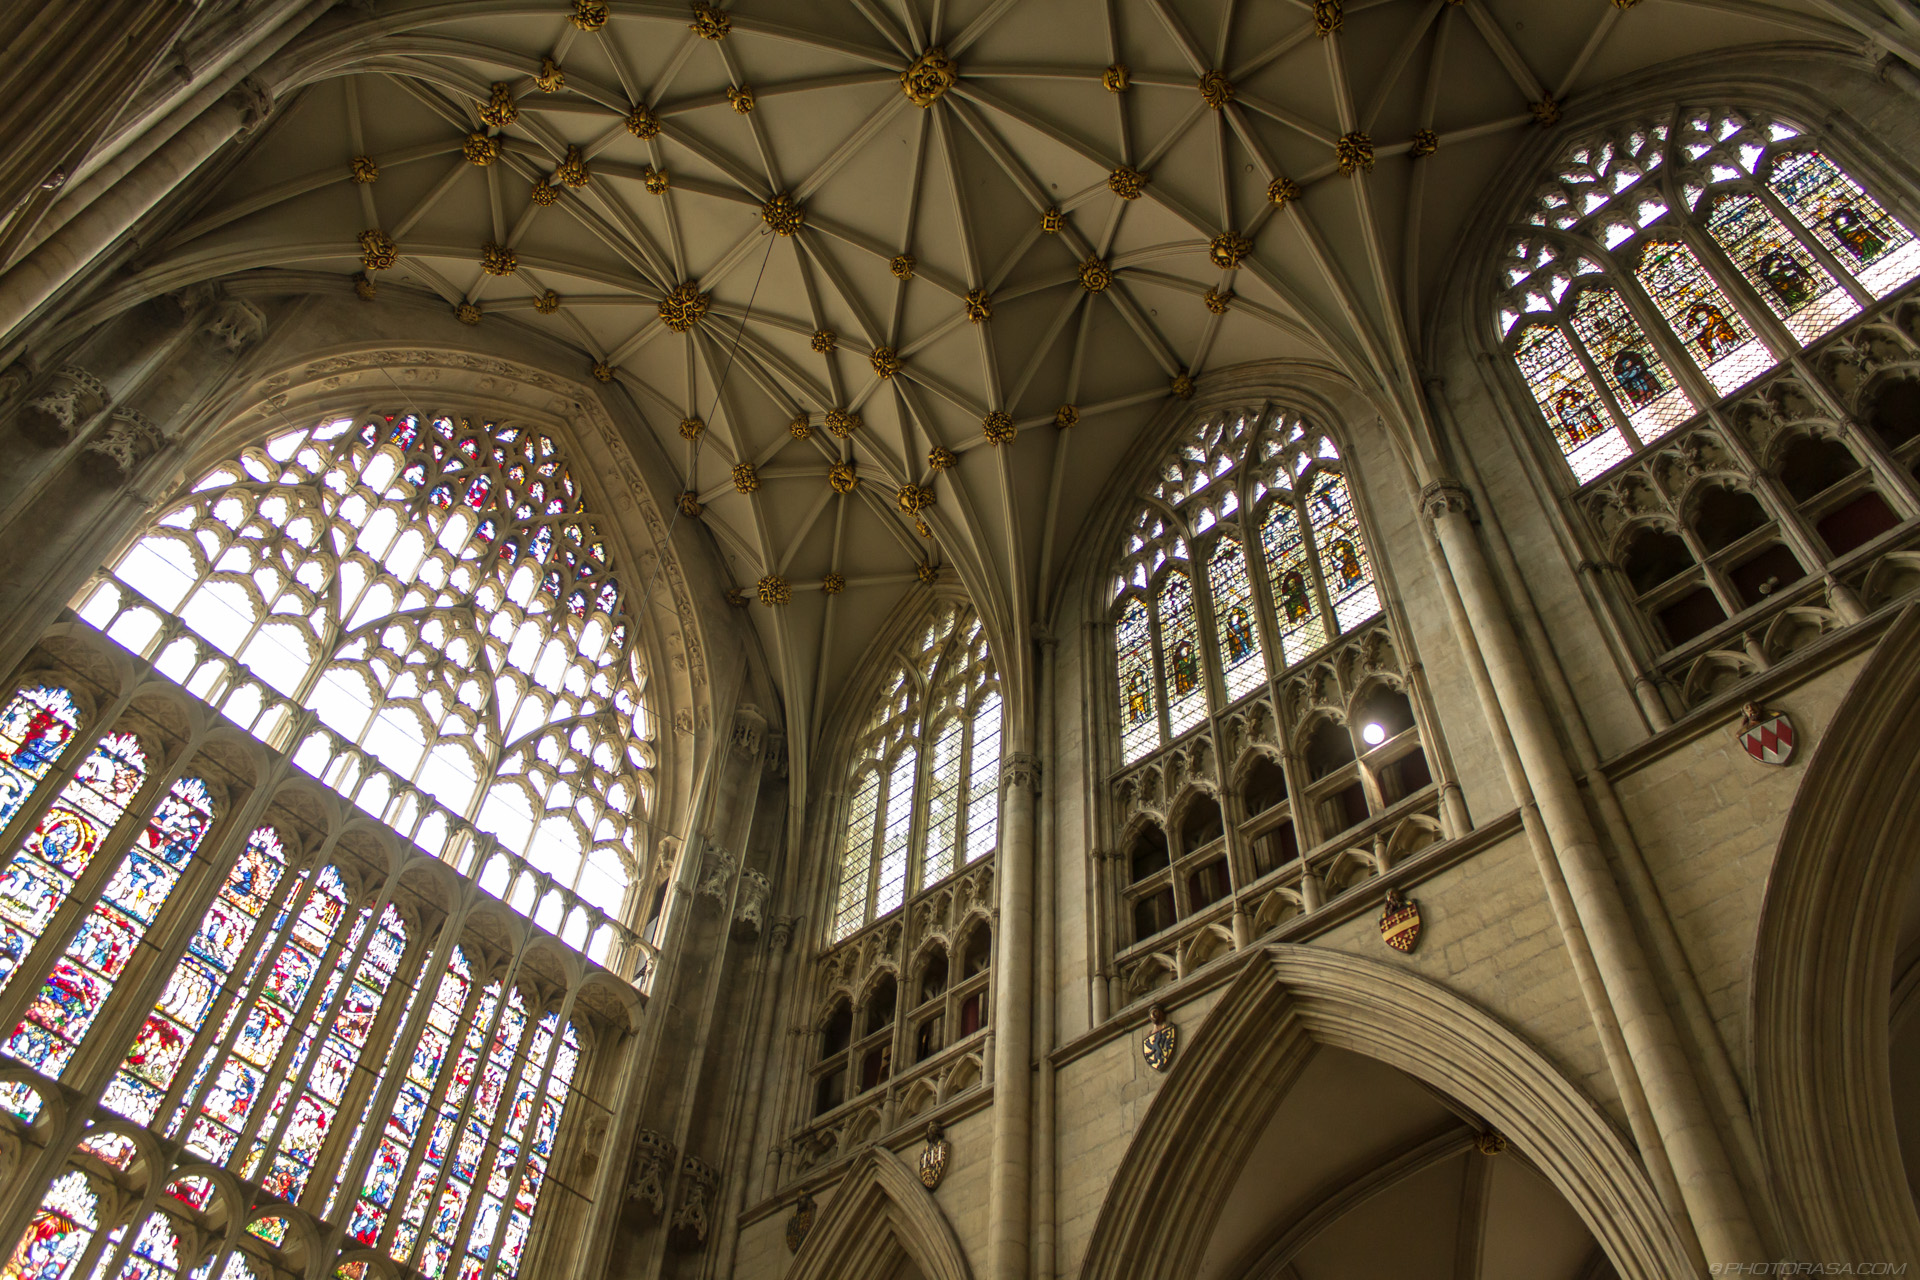 http://photorasa.com/yorkminster-cathedral/rose-window-and-ceiling/